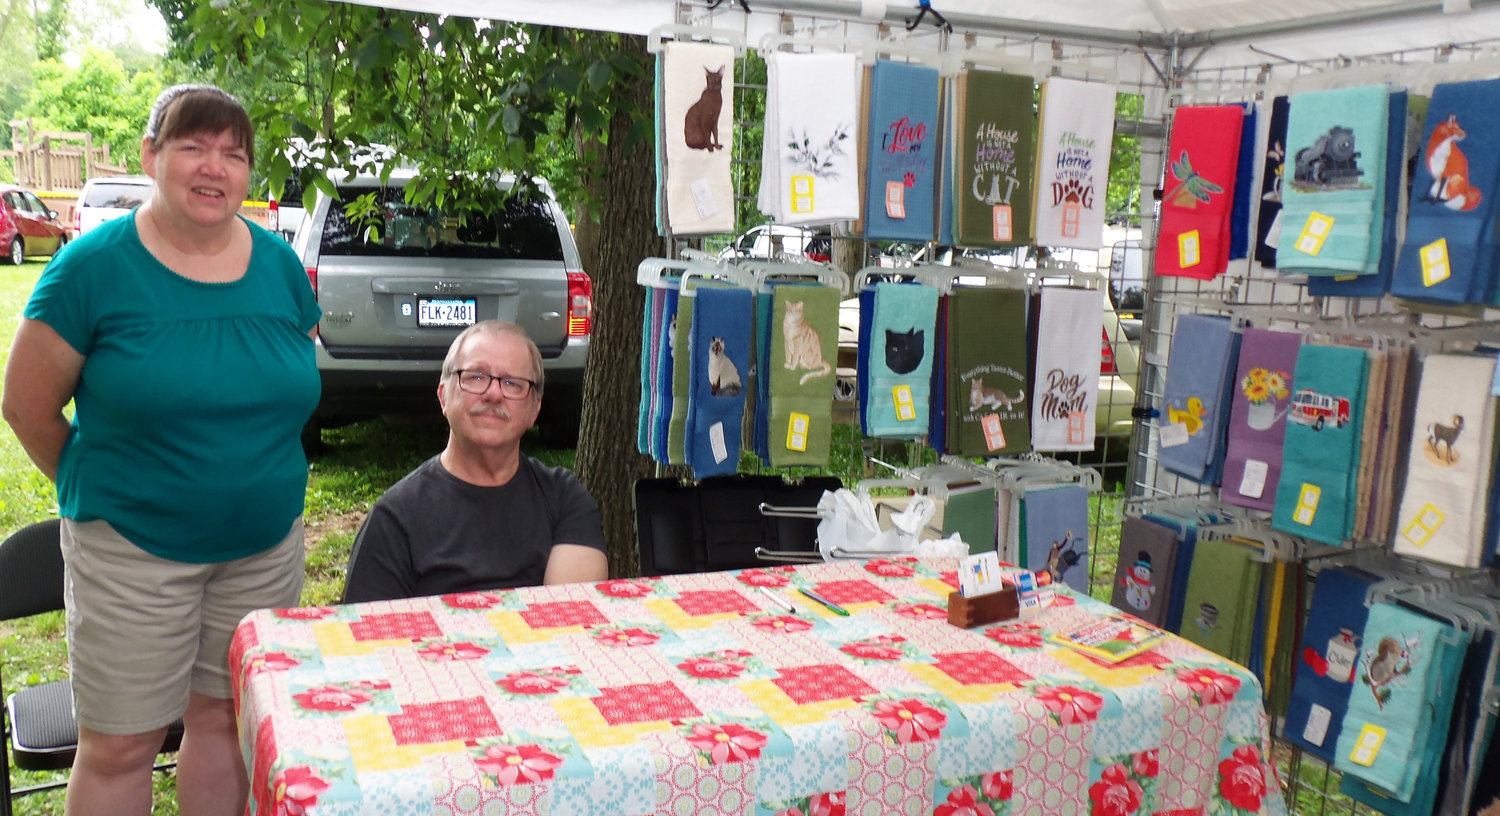 Embroidered Edge Inc. was one of the roughly 100 vendors on display at the Middletown Area Historical Society's Arts & Crafts Fair on June 8. Carolyn and Jeff Singley of Gettsysburg are Embroidered Edge's proprietors.